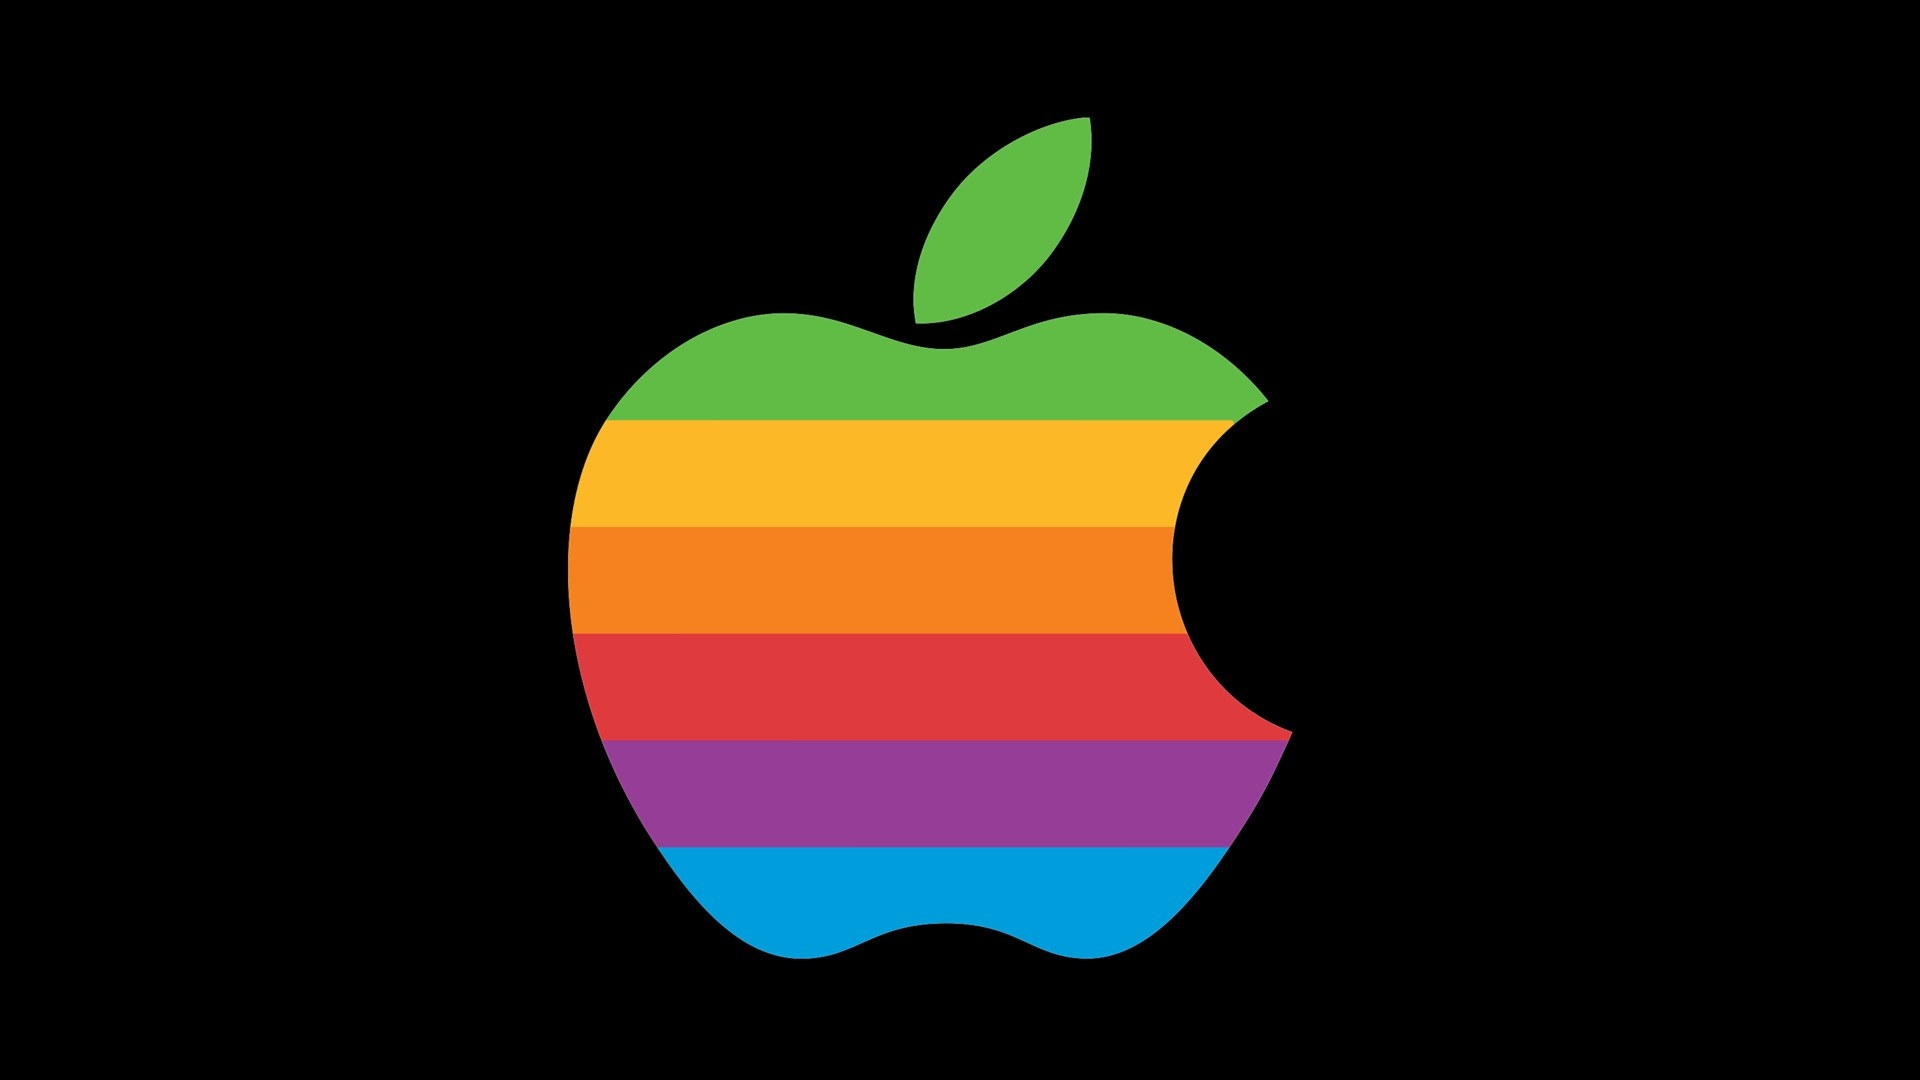 Apple logo antigo